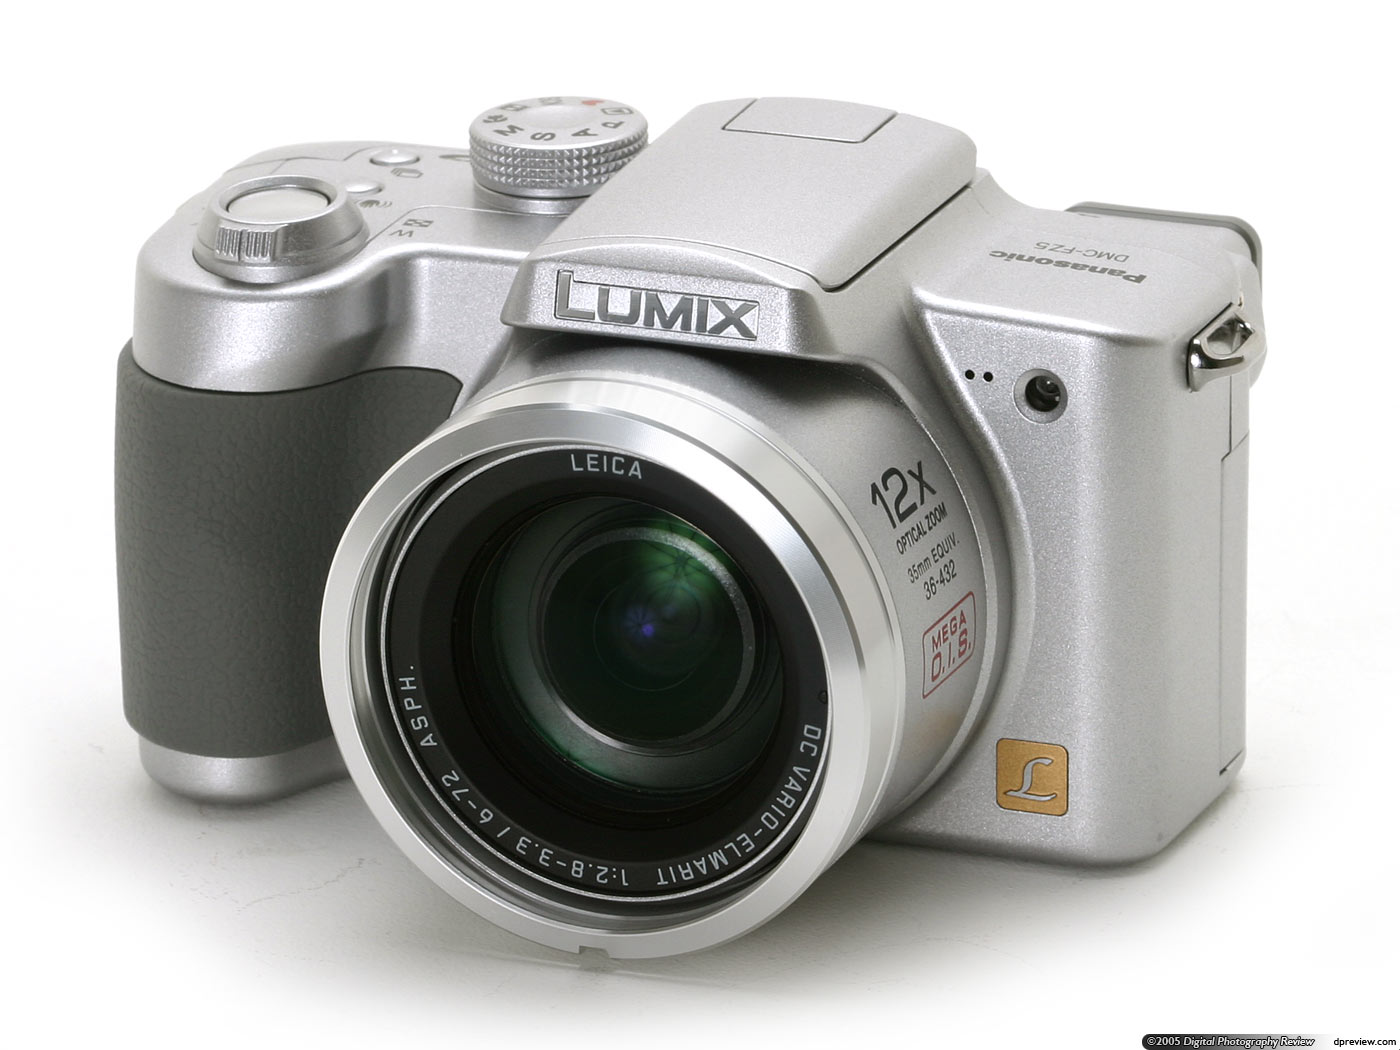 panasonic lumix dmc fz5 review digital photography review rh dpreview com panasonic dmc-fz3 manual panasonic dmc tz3 mode d'emploi